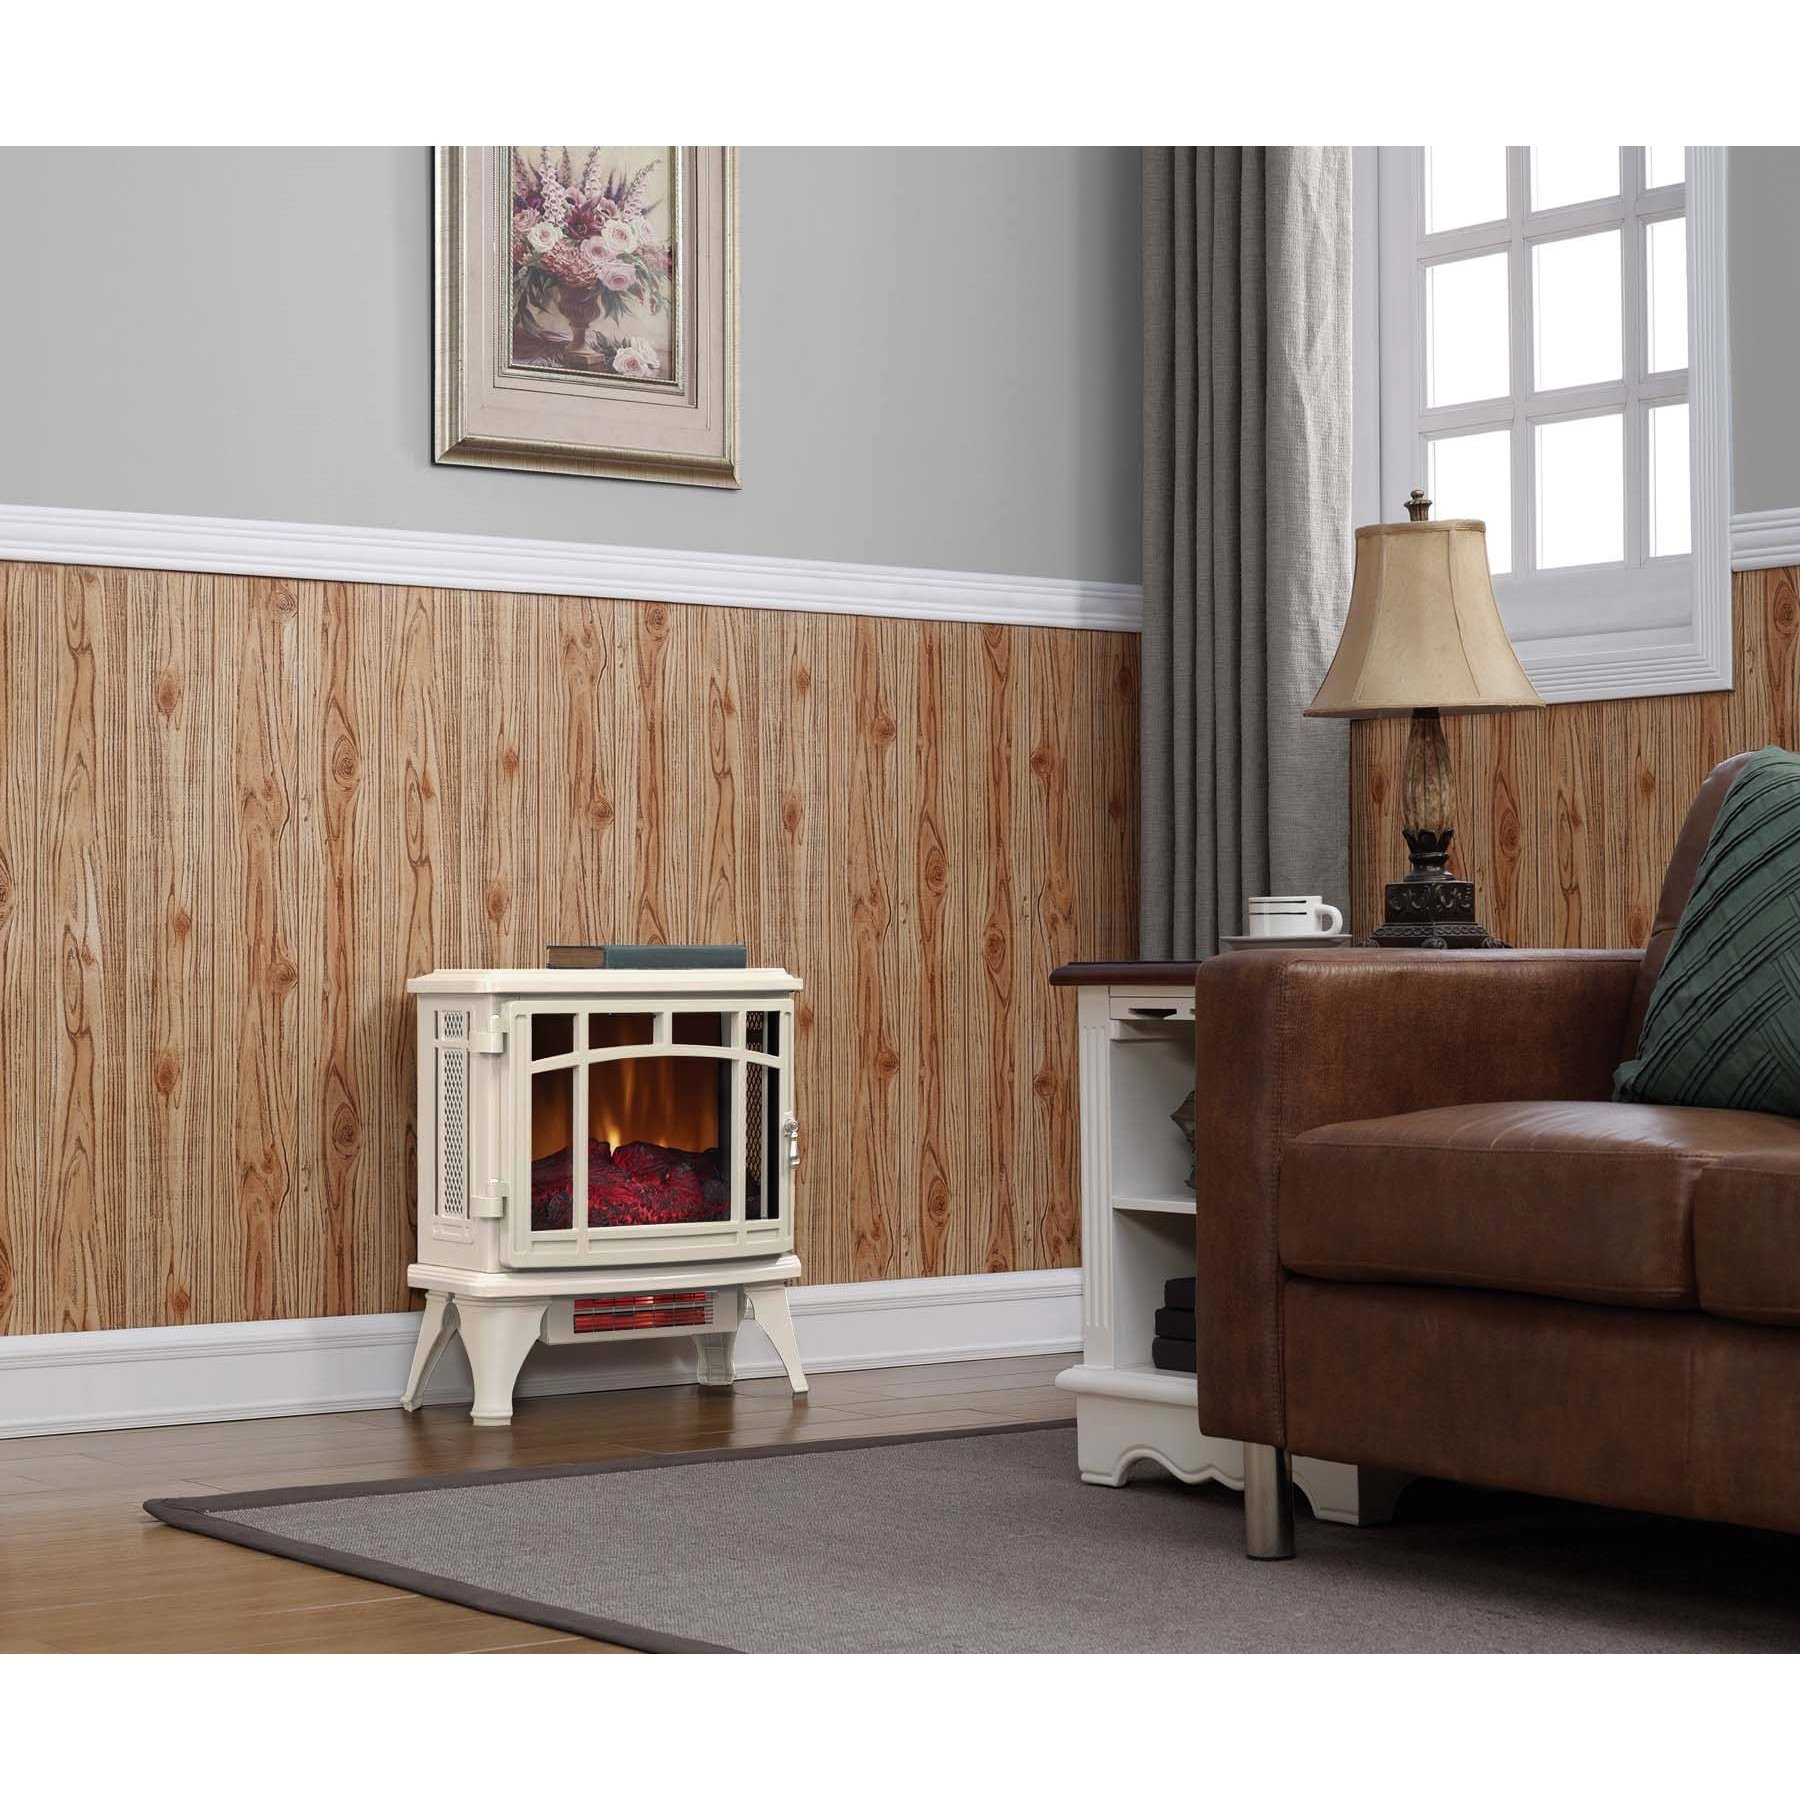 duraflame infrared quartz stove heater with flame effect cream